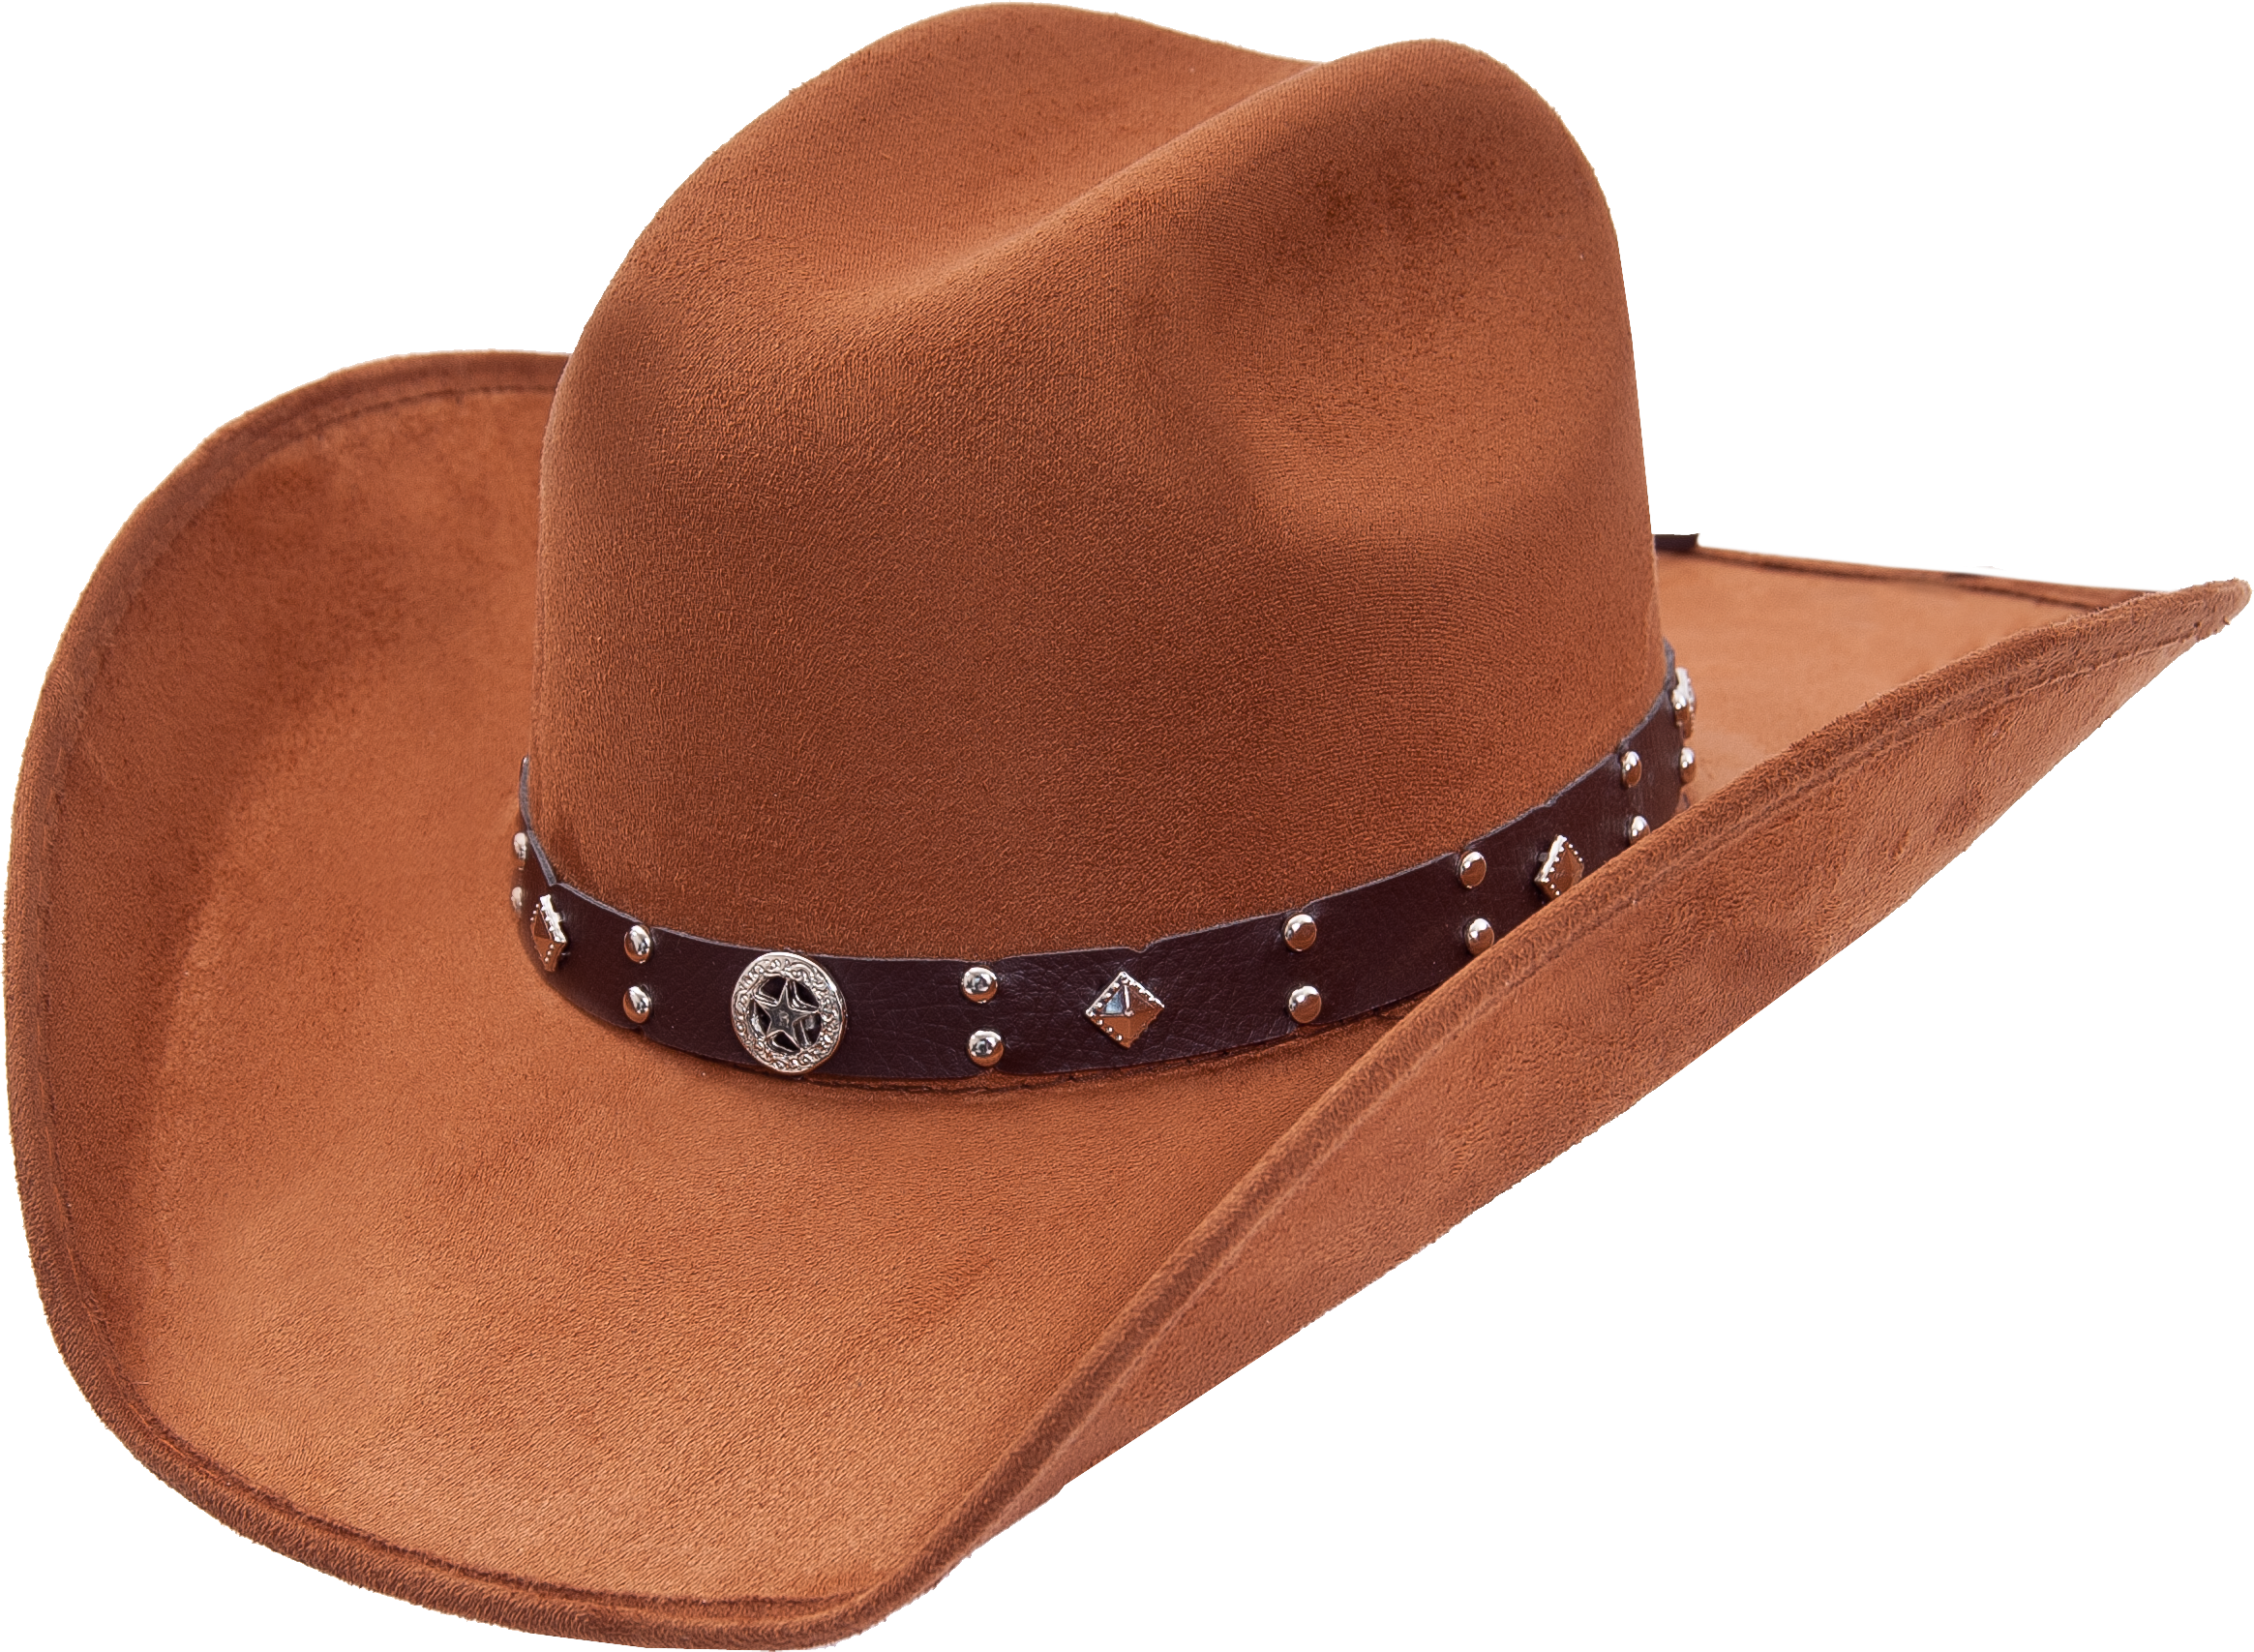 png royalty free download Western hat clipart. Cowboy themed free on